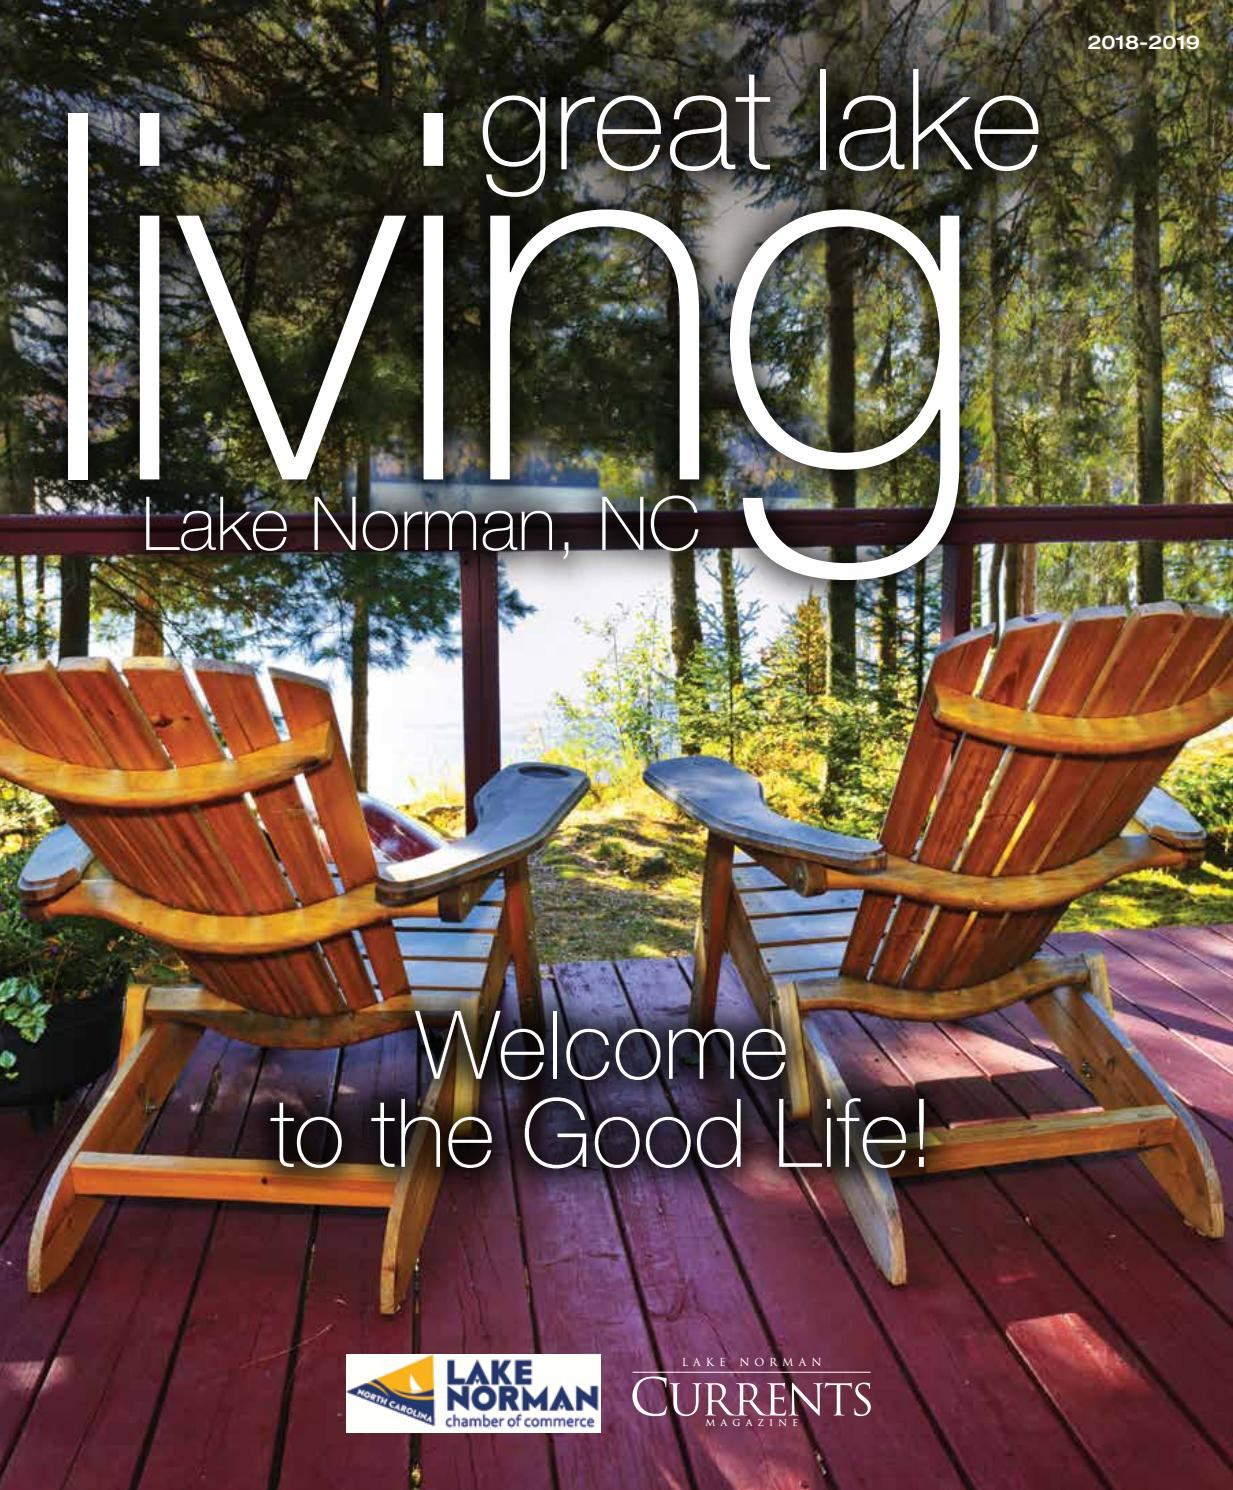 robbins hardwood flooring company of great lake living 2018 2019 by lake norman currents issuu pertaining to page 1